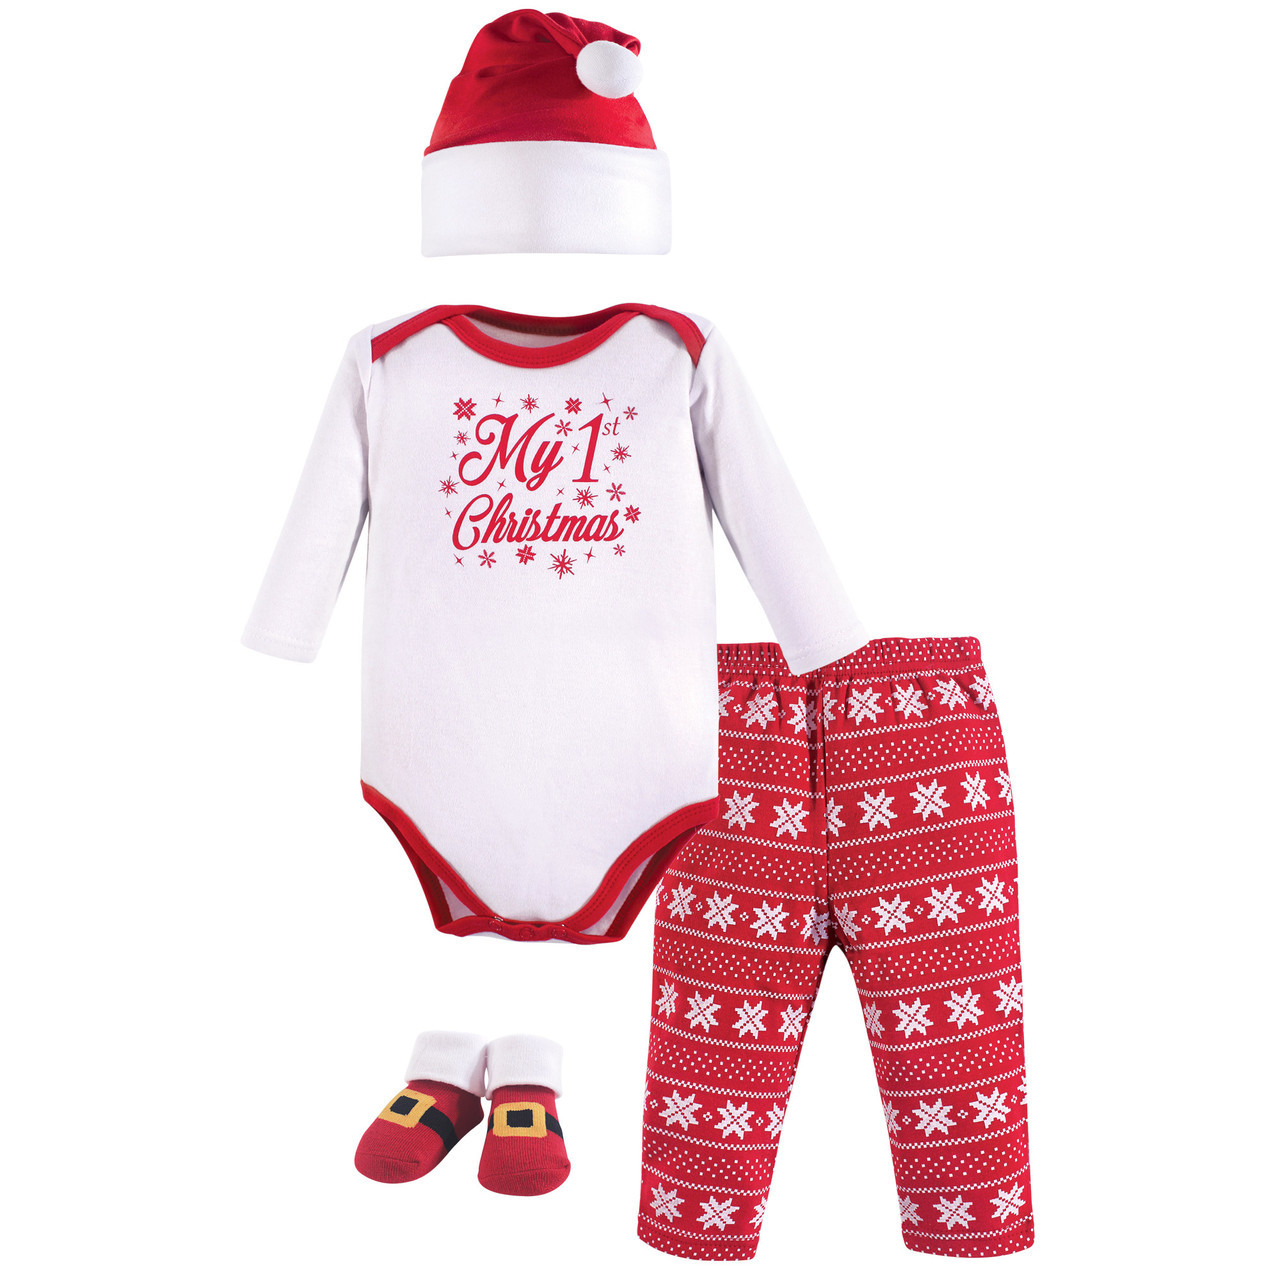 My First Christmas.Holiday Clothing Gift Set 4 Piece My First Christmas 0 6 Months